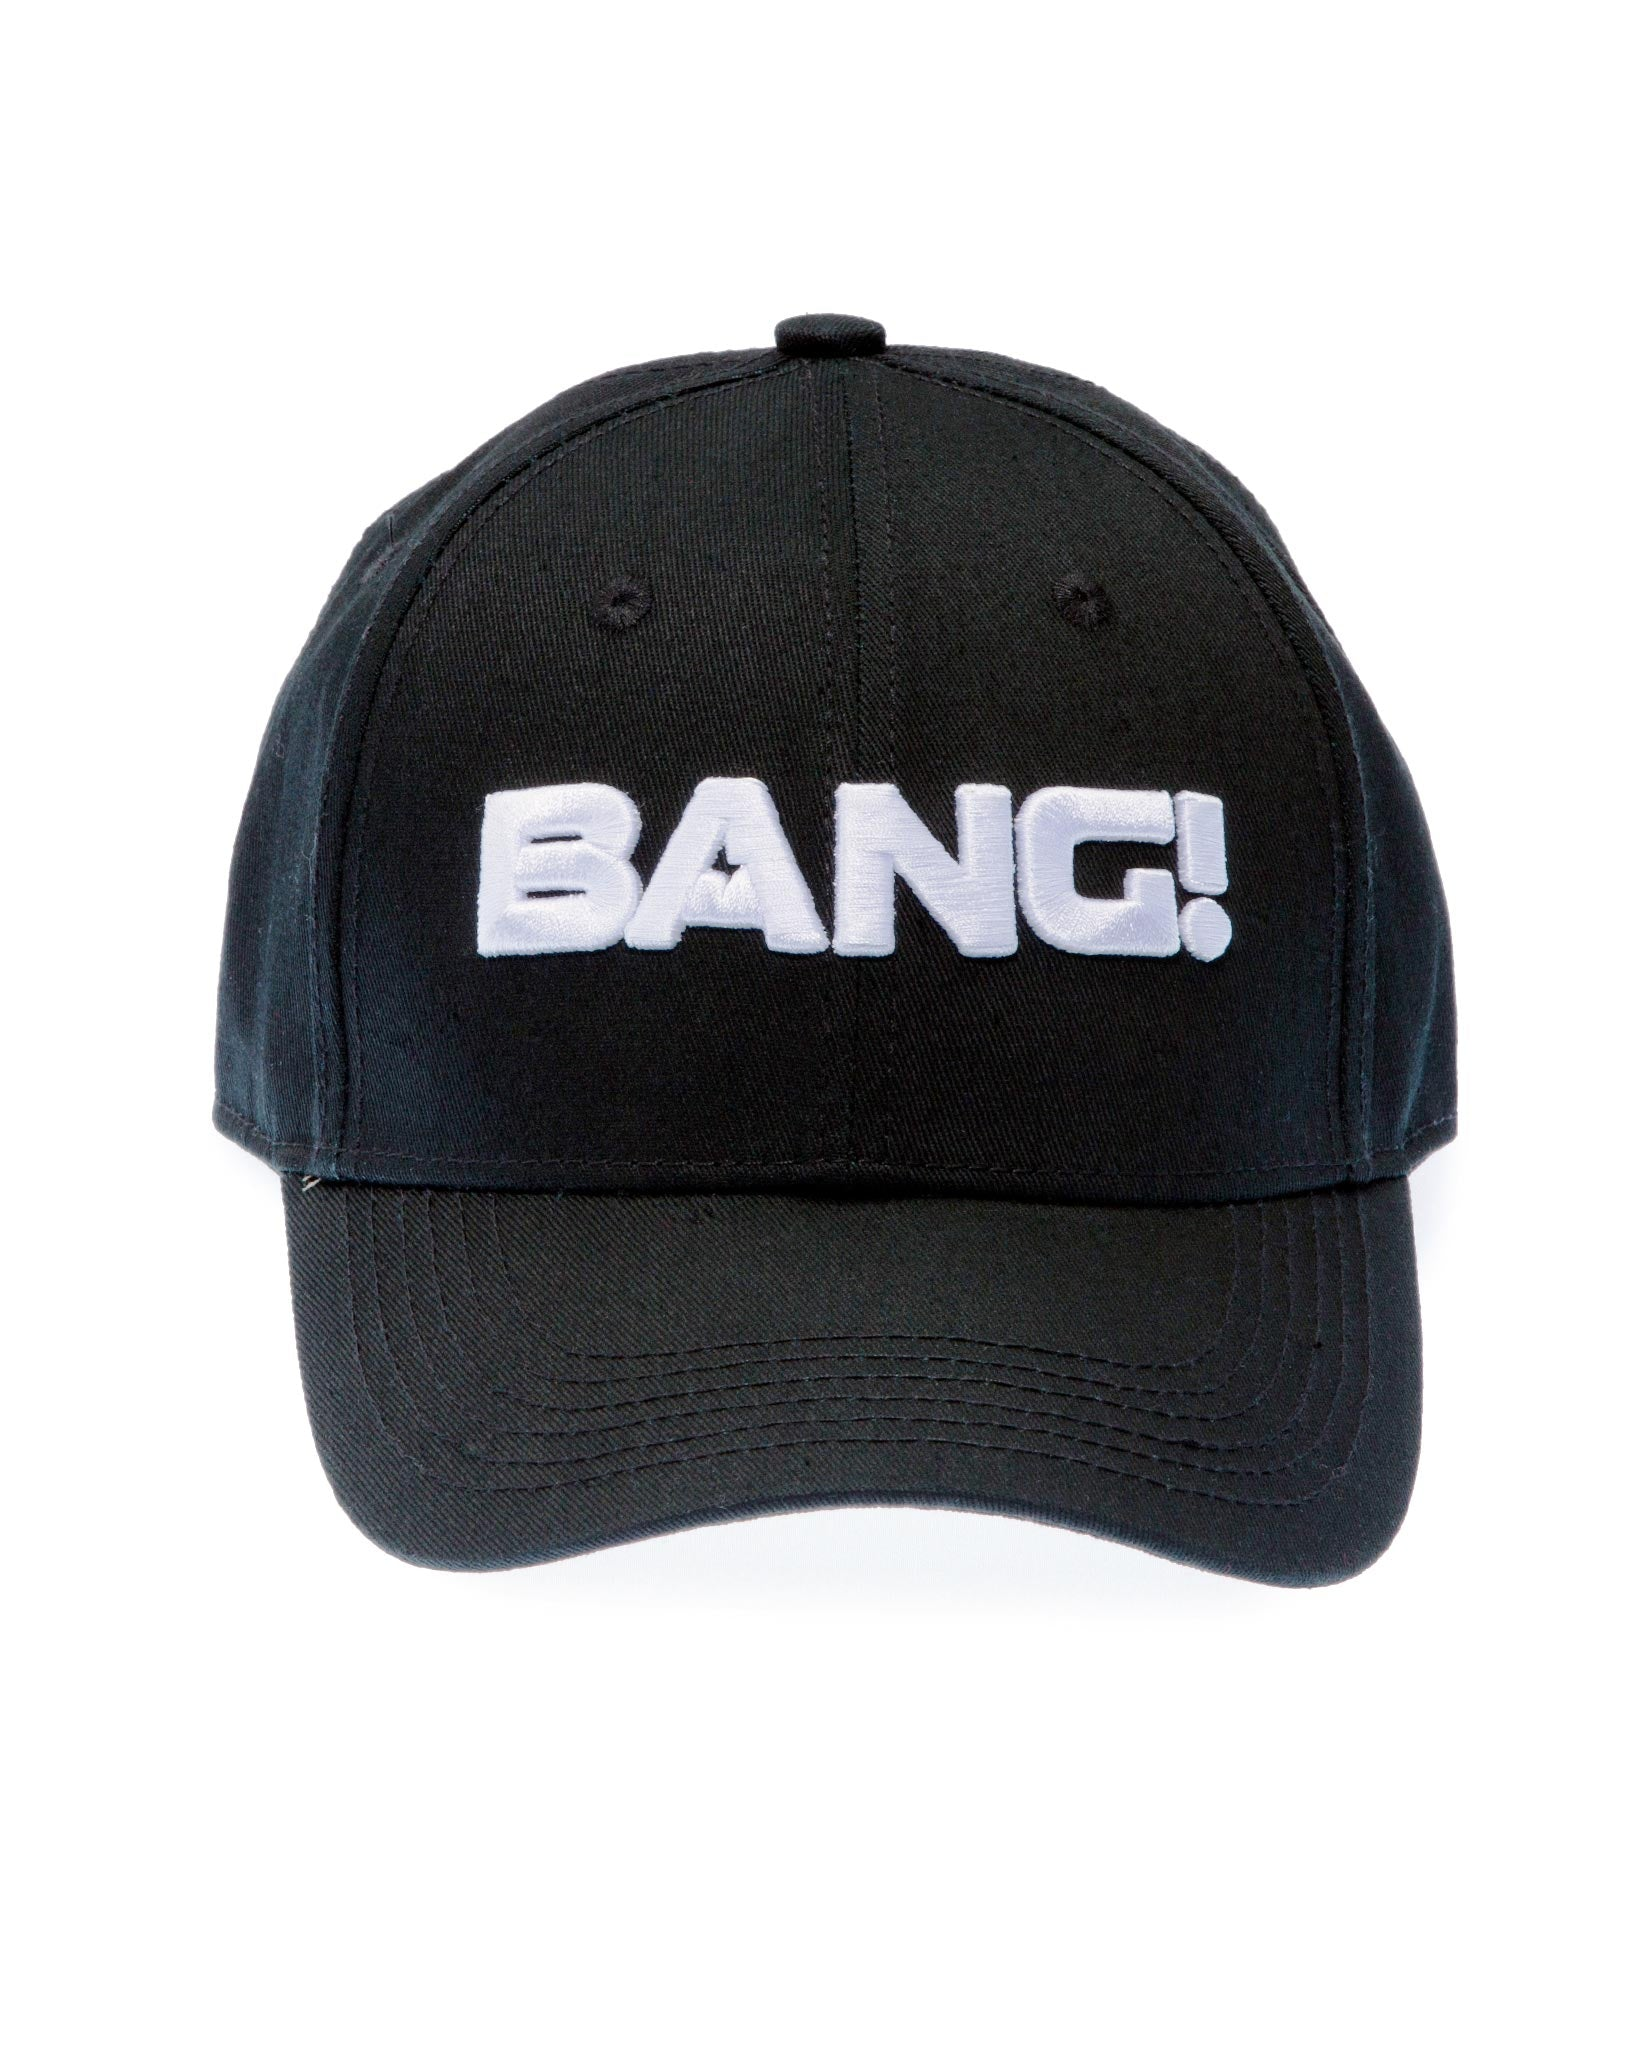 edf21ebb831 The BaNG! Black Cap